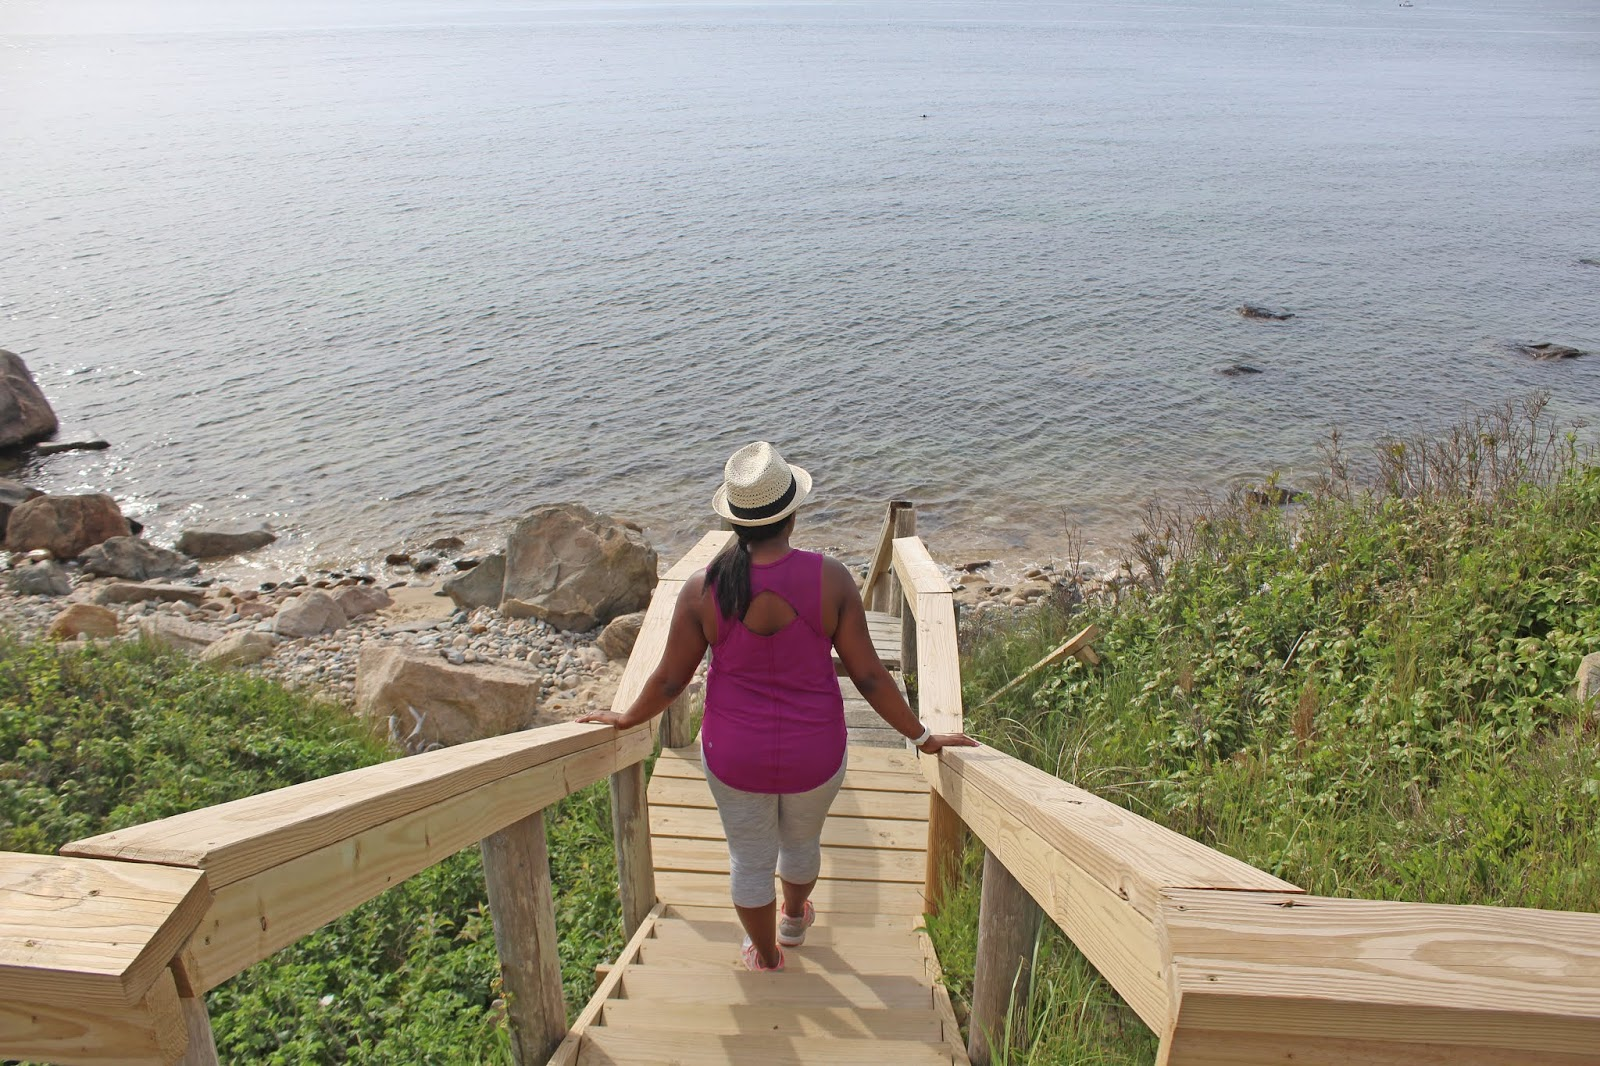 hiking to a secluded beach 5